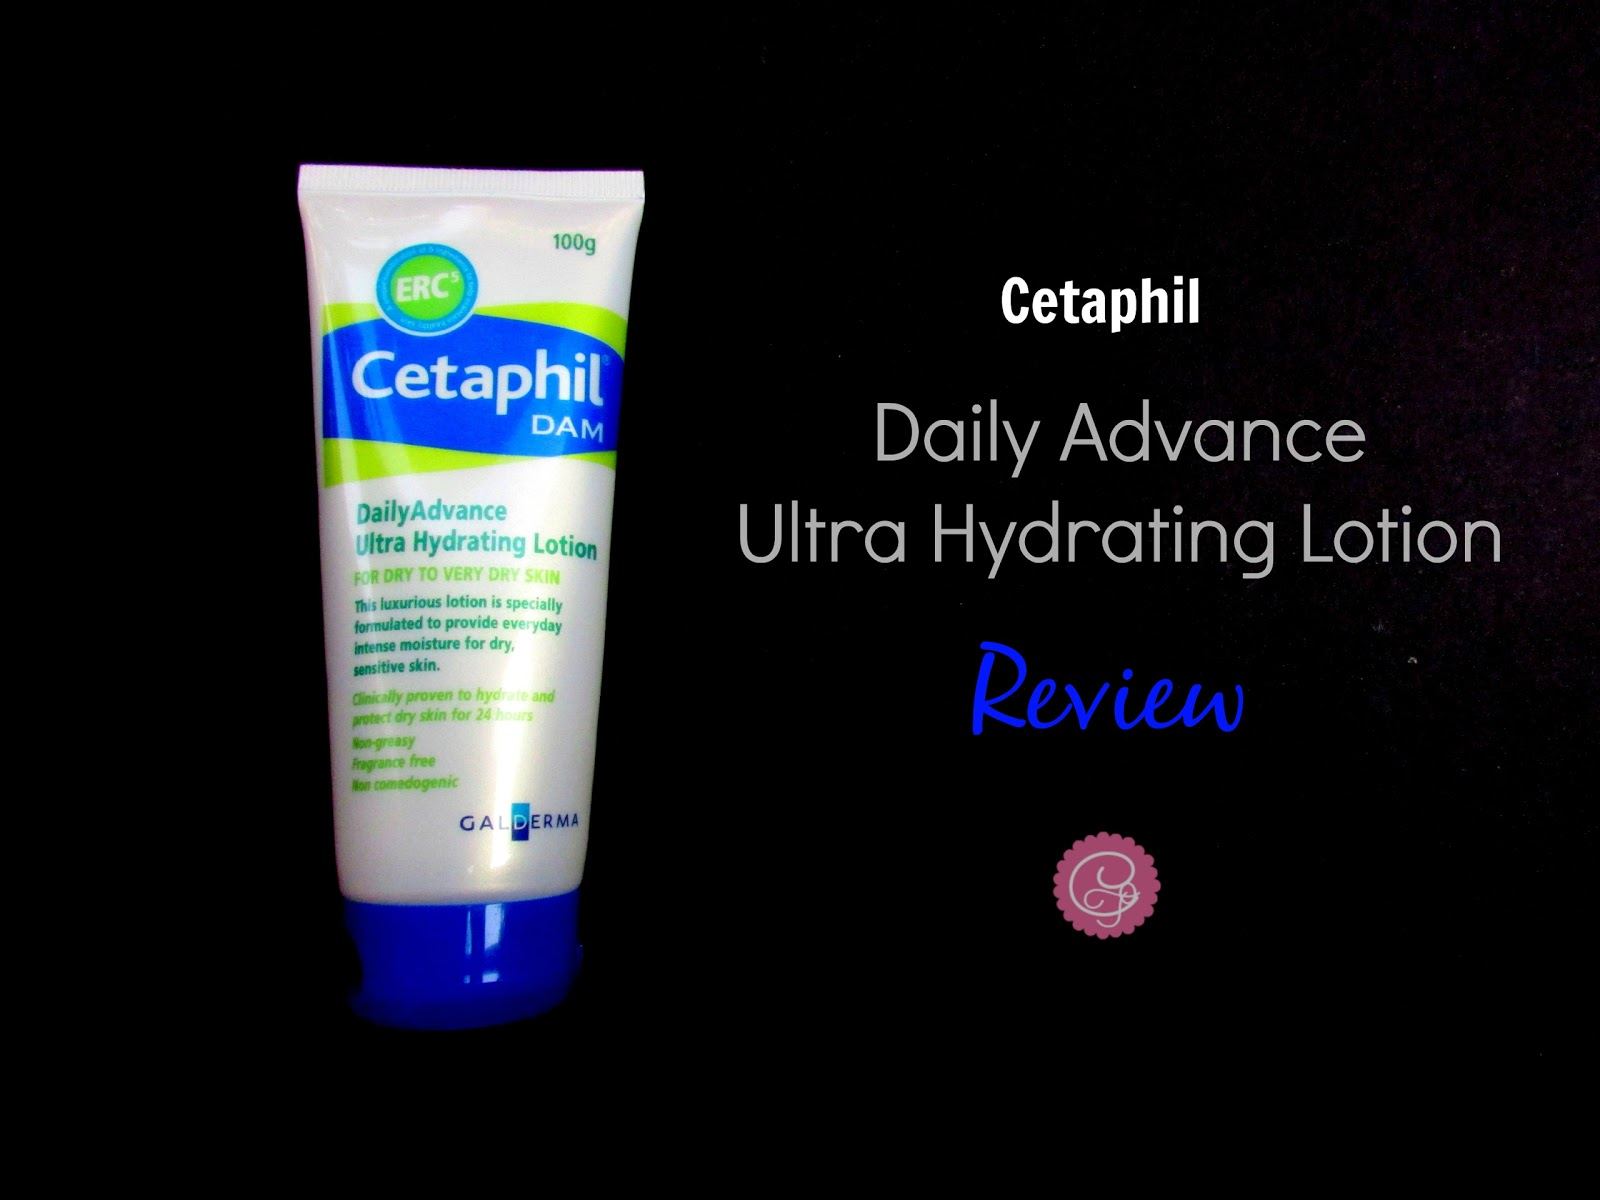 Cetaphil Daily Advance Ultra Hydrating Lotion Review| cherryontopblog.com